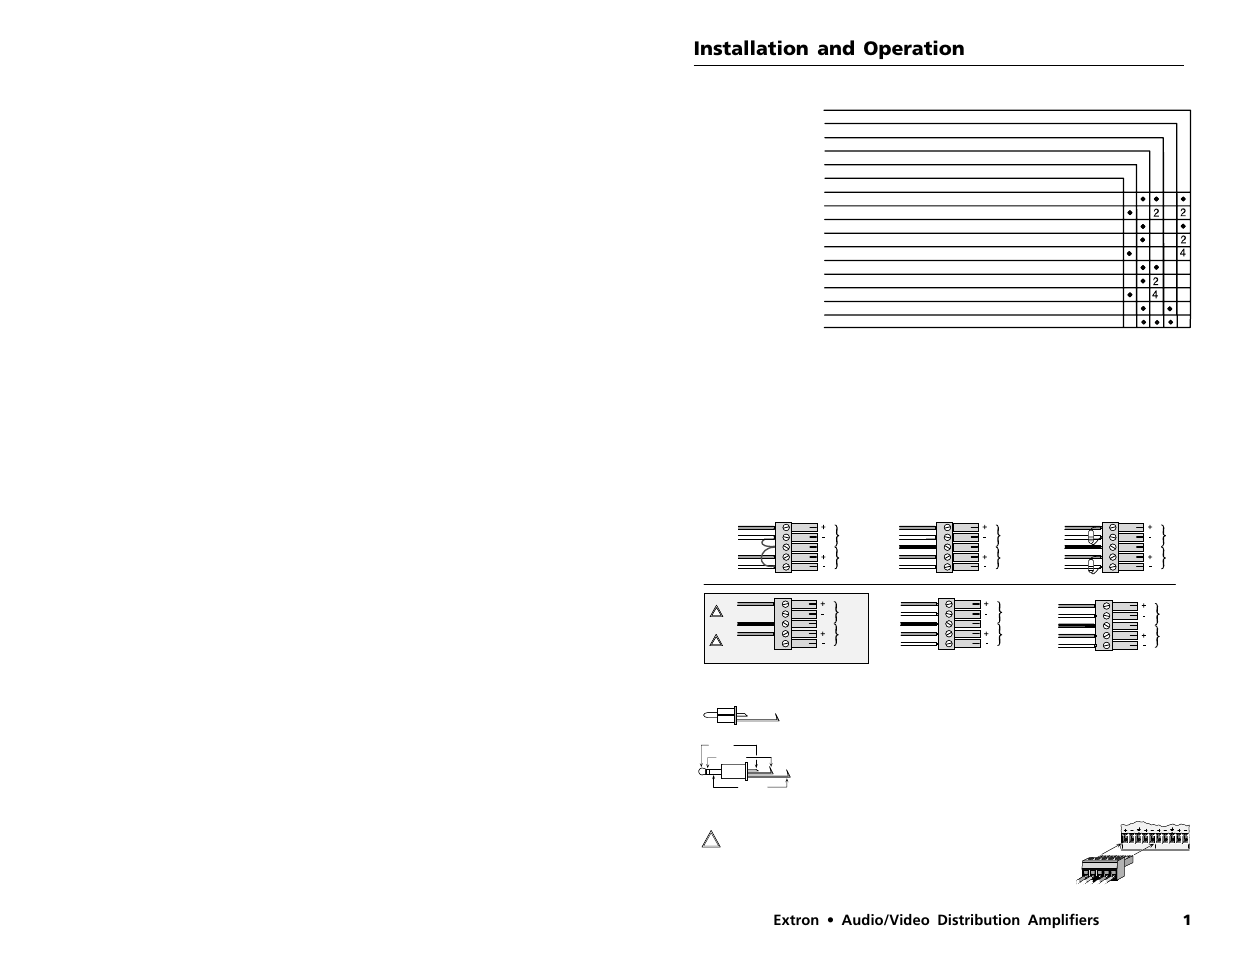 Installation And Operation 1extron Audio Video Distribution The Amplifier Amplifiers Extron Electronics Svda 6a Mx User Manual Page 3 6